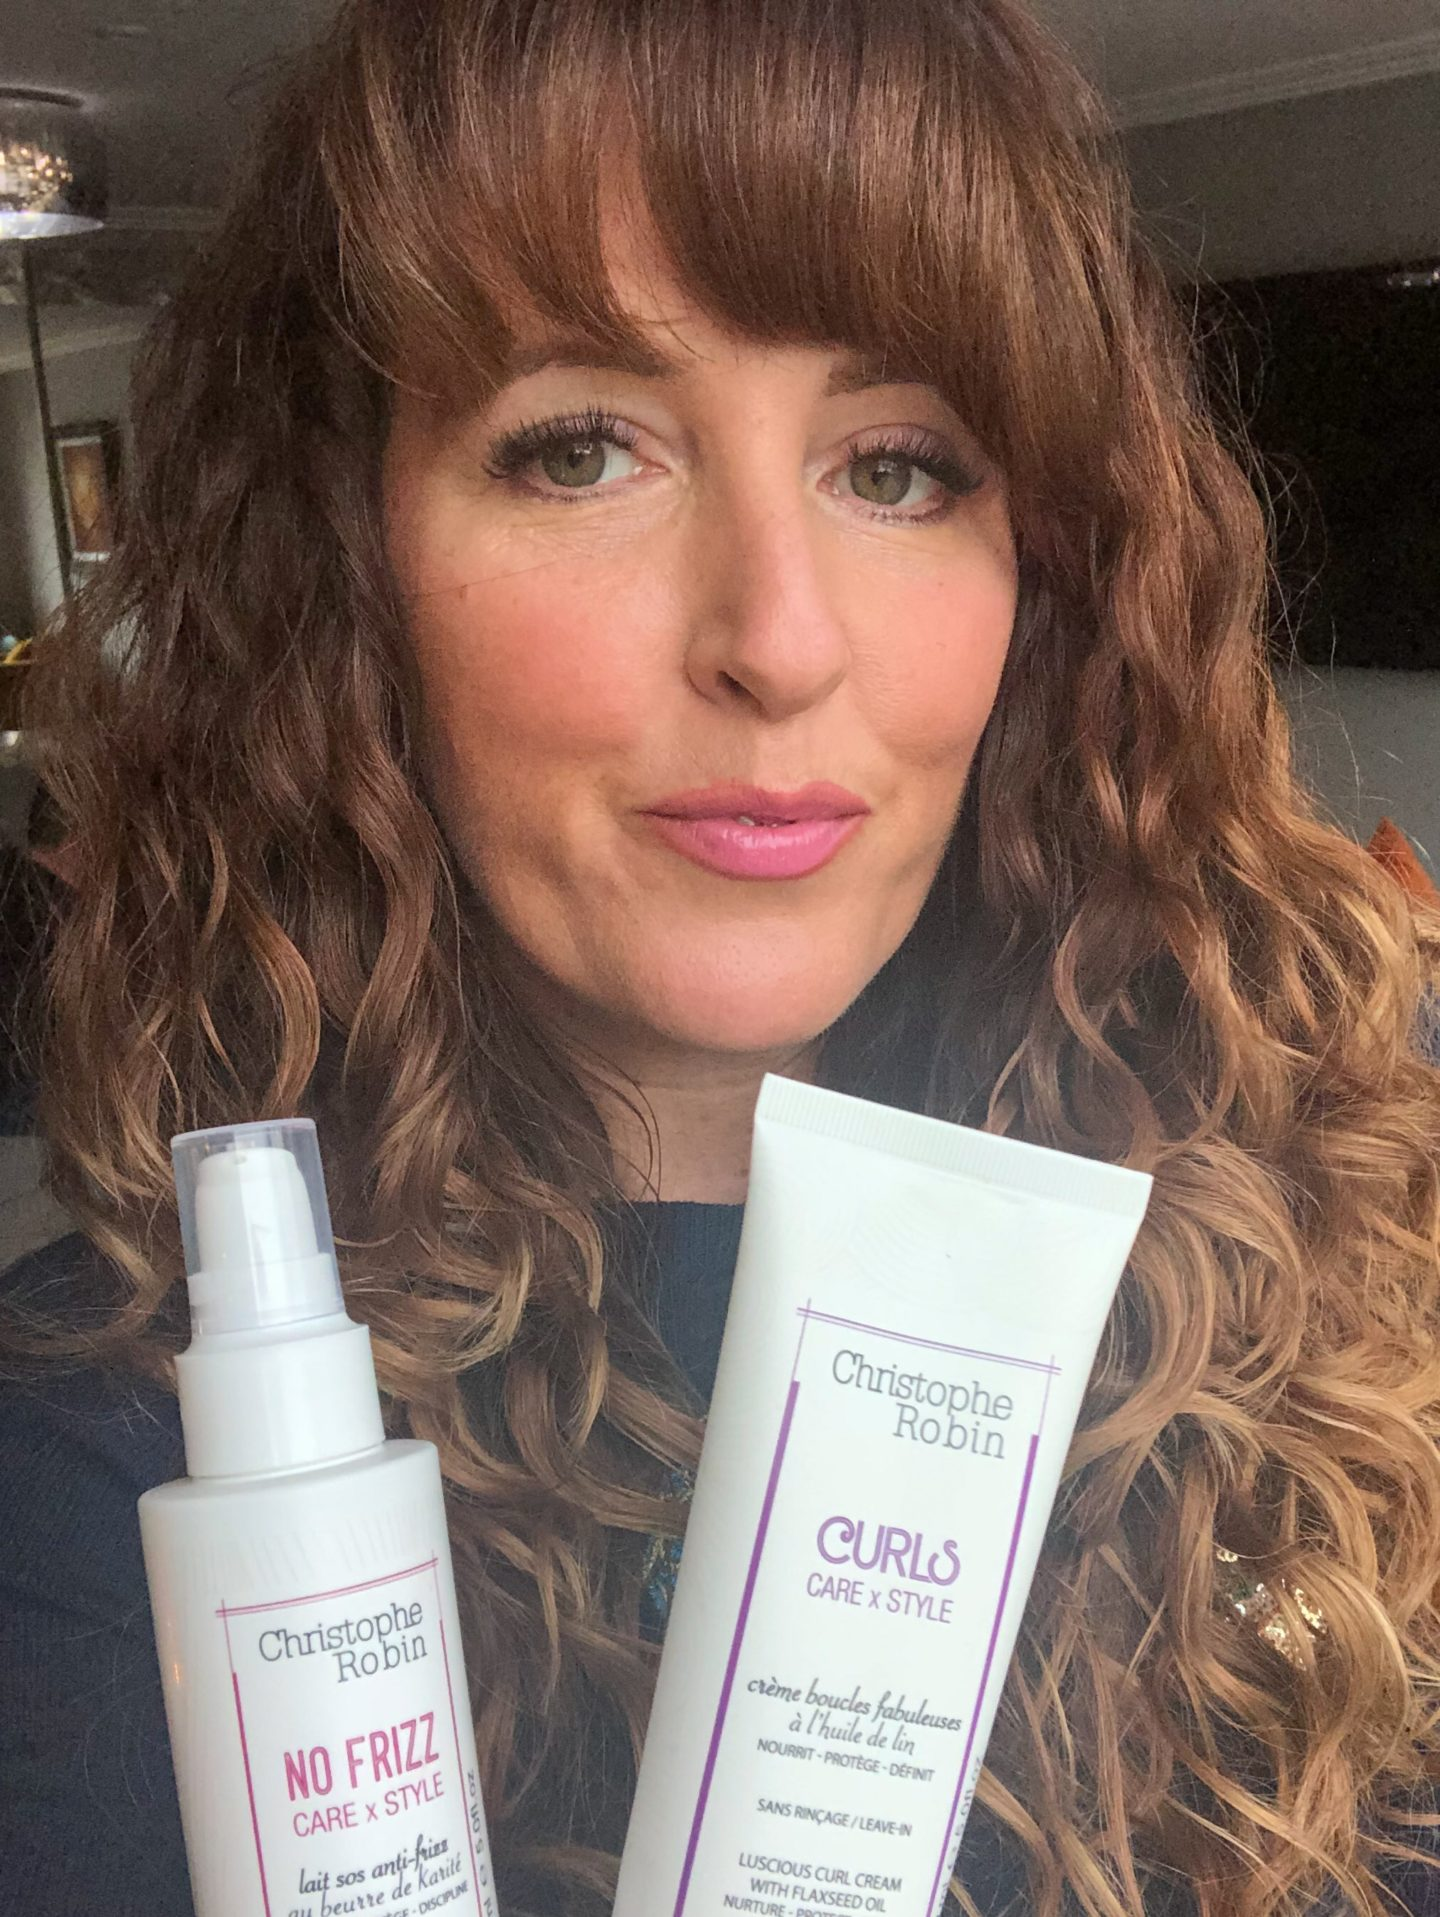 Christophe Robin Curl Cream products are curly girl method approved. Christophe Robin is high end hair care from concentrated natural active ingredients curly girl milk and cream